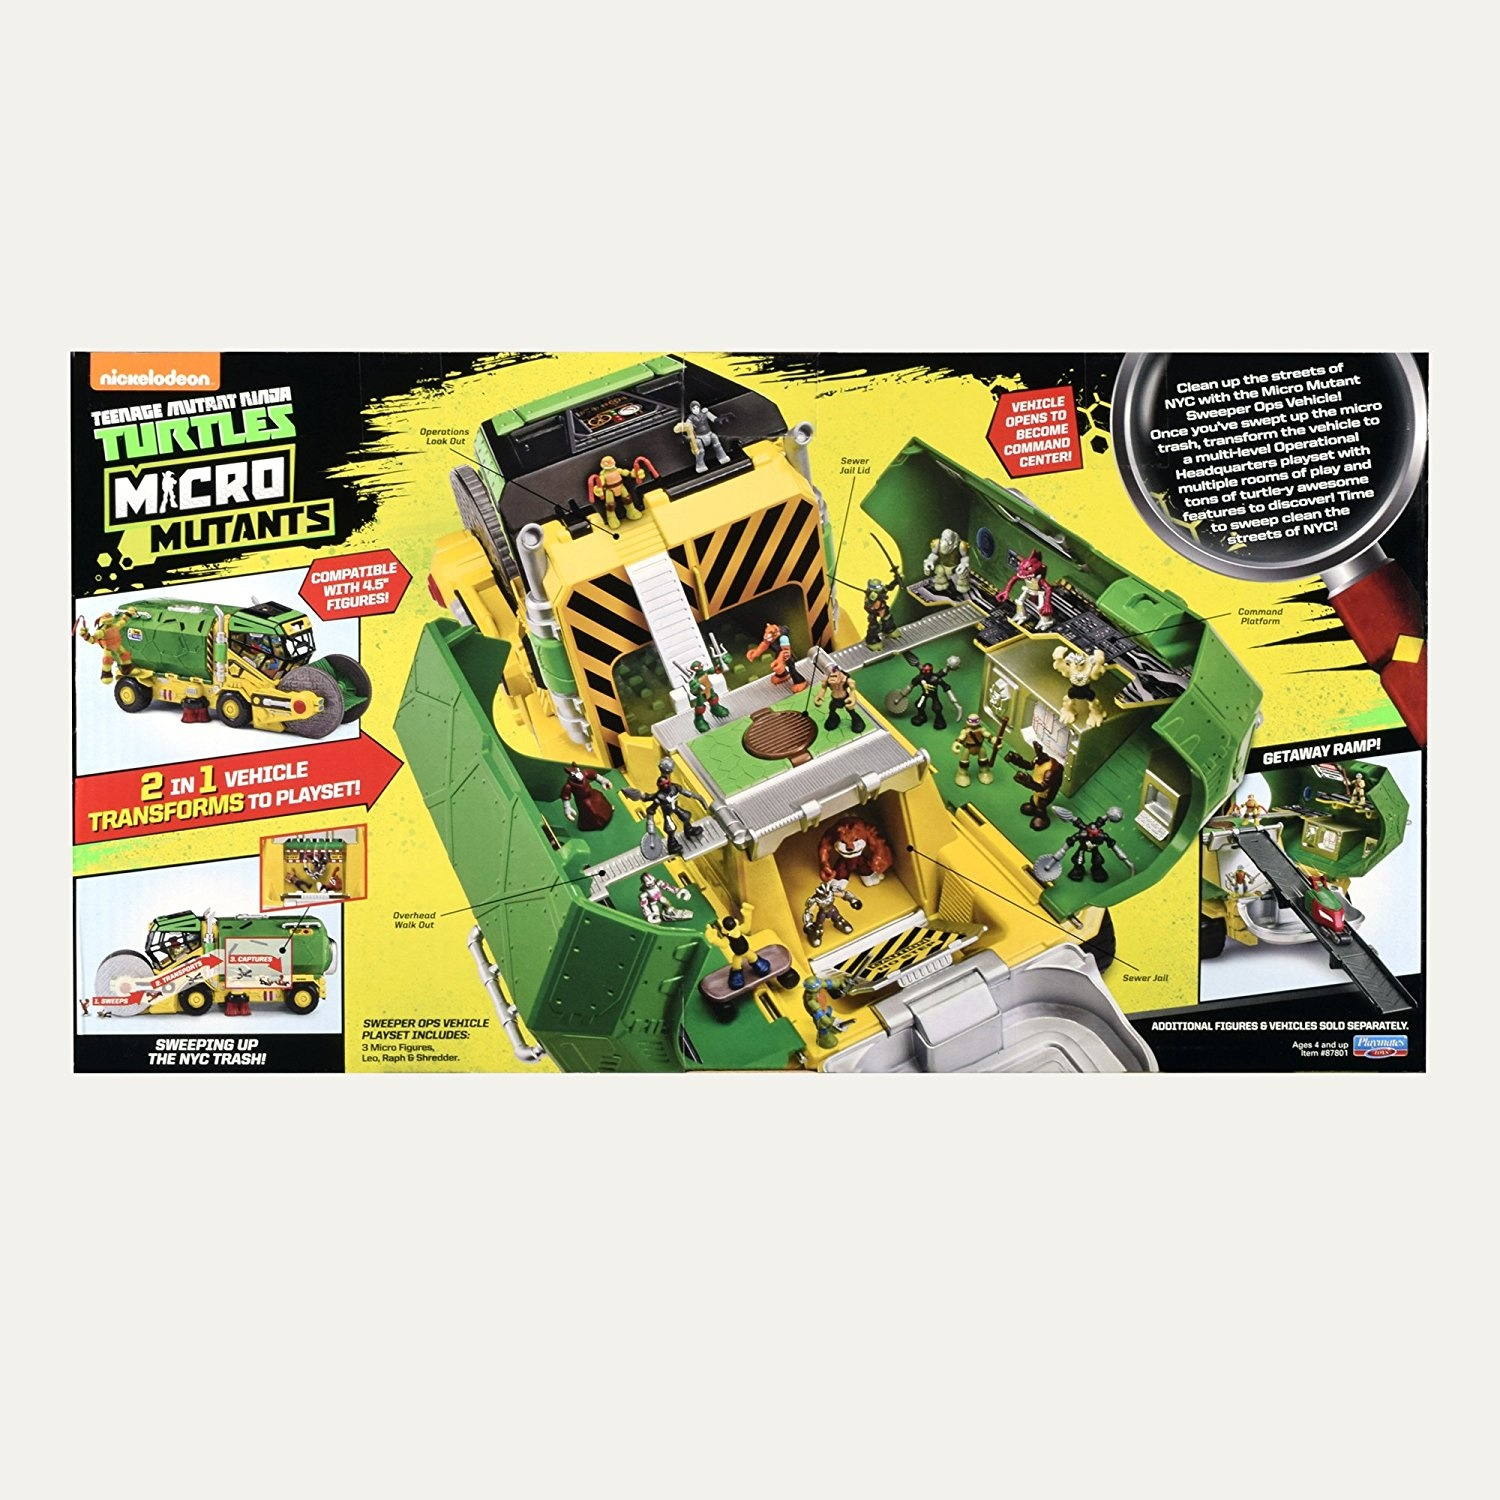 Teenage Mutant Ninja Turtles Micro Sweeper Ops Deluxe Vehicle To Playset